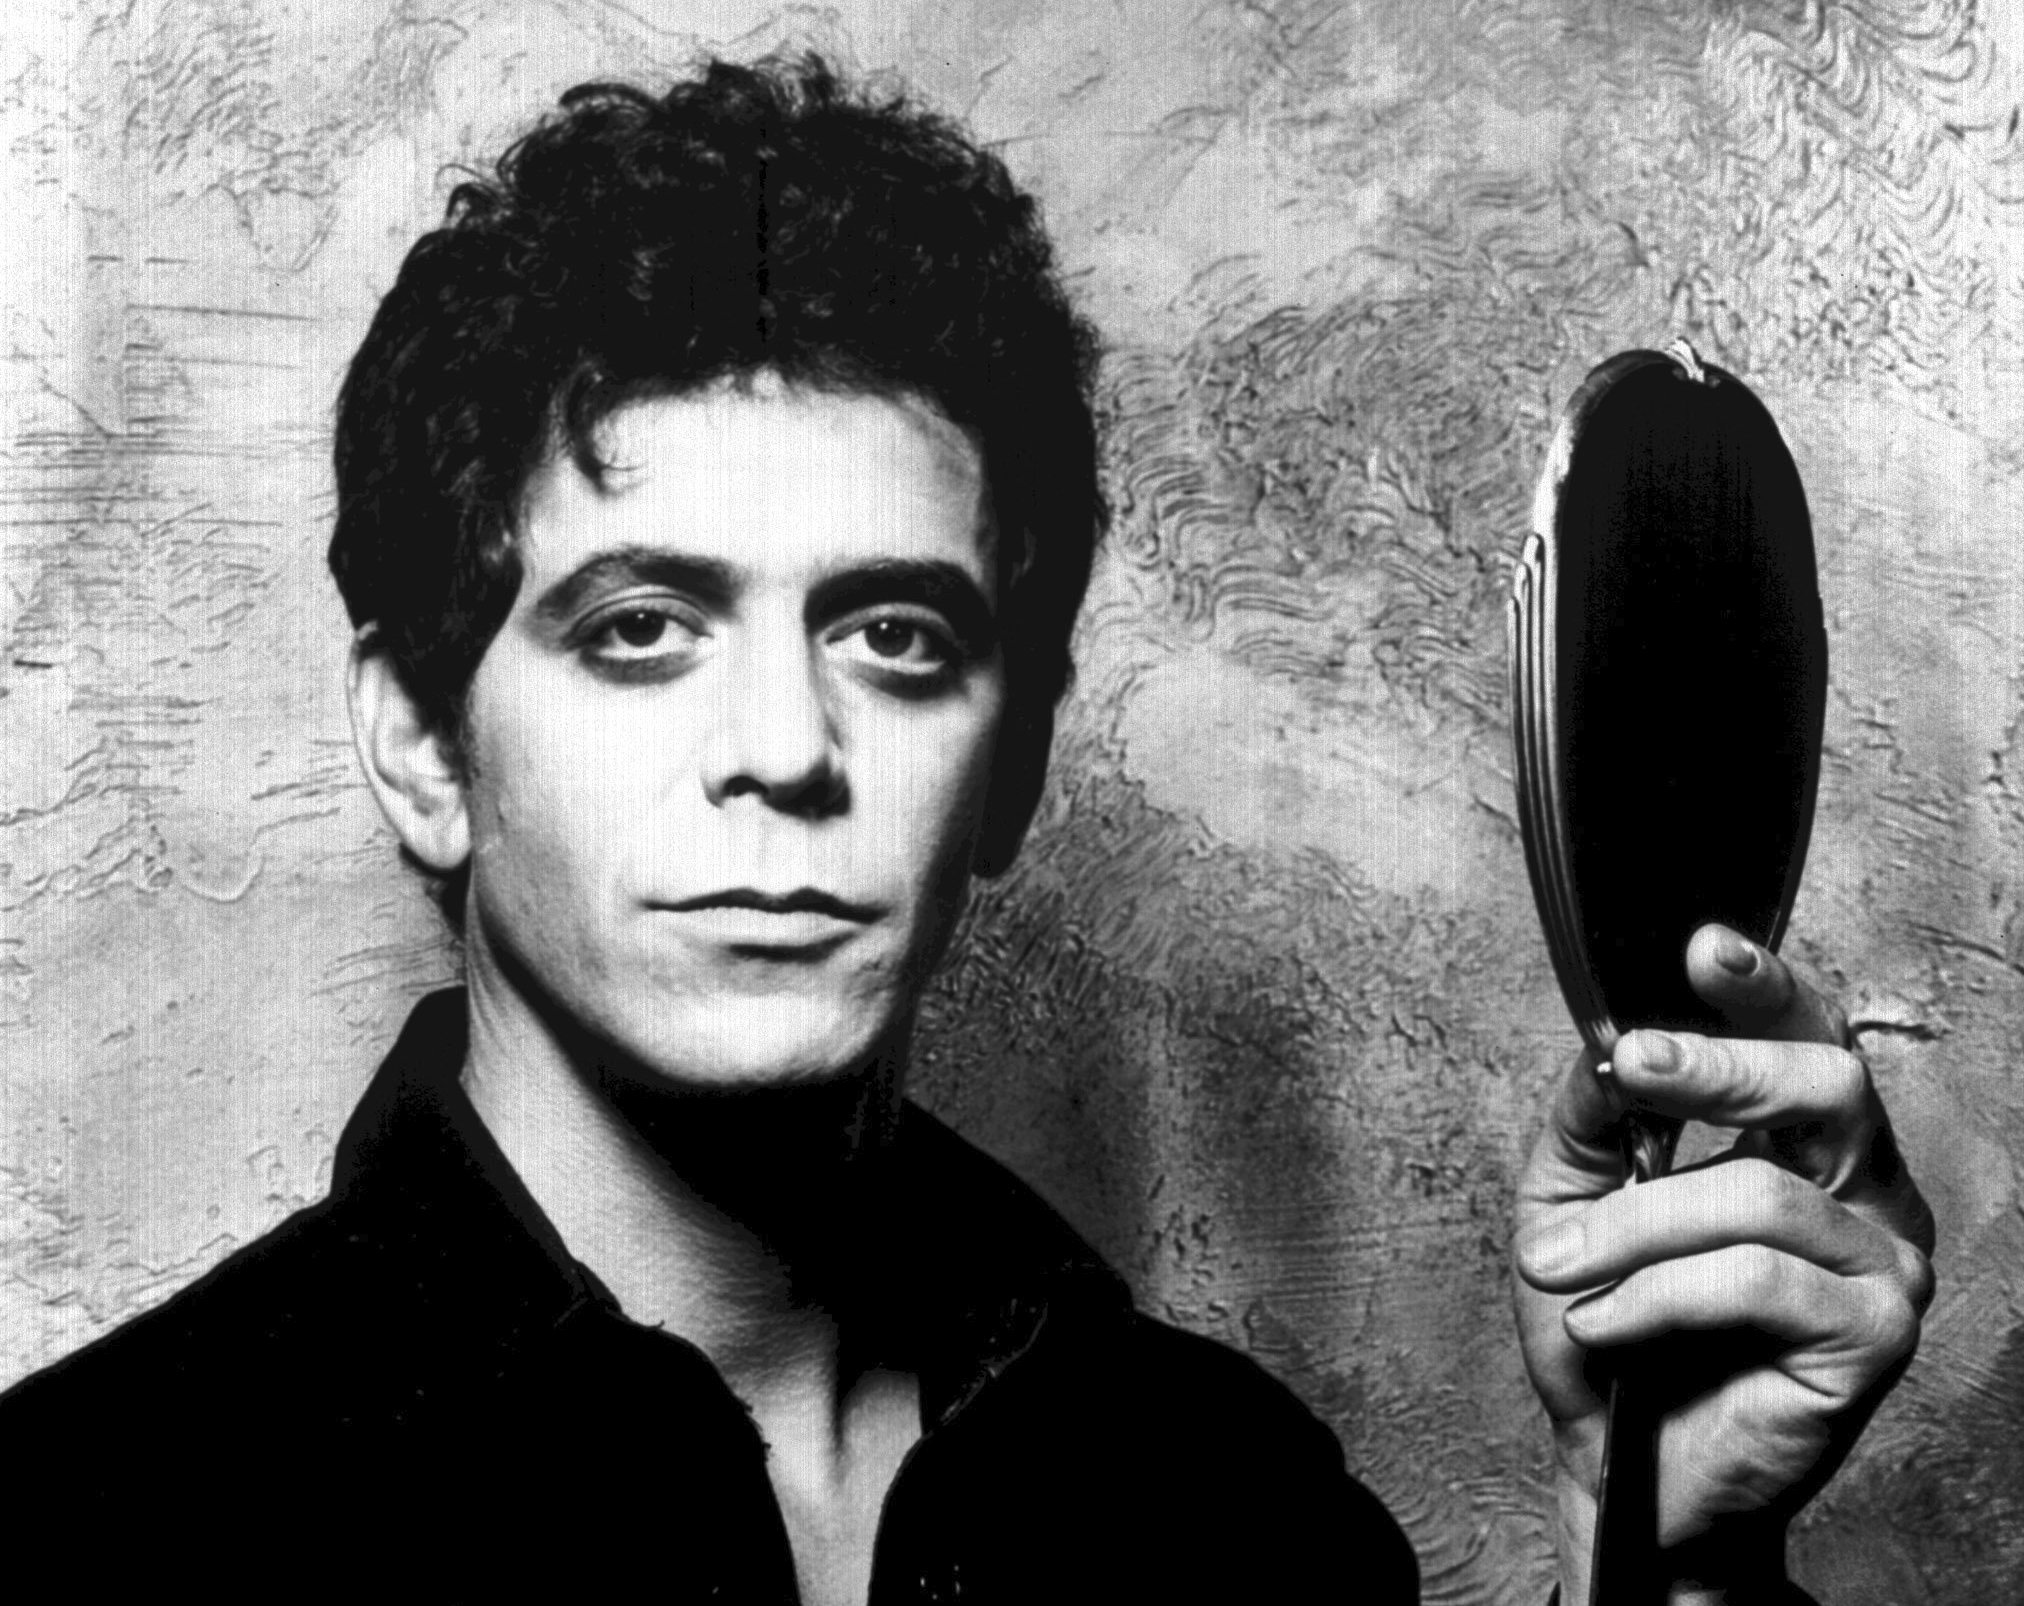 Lou Reed leaves more than a musical void | Clare Allan ...